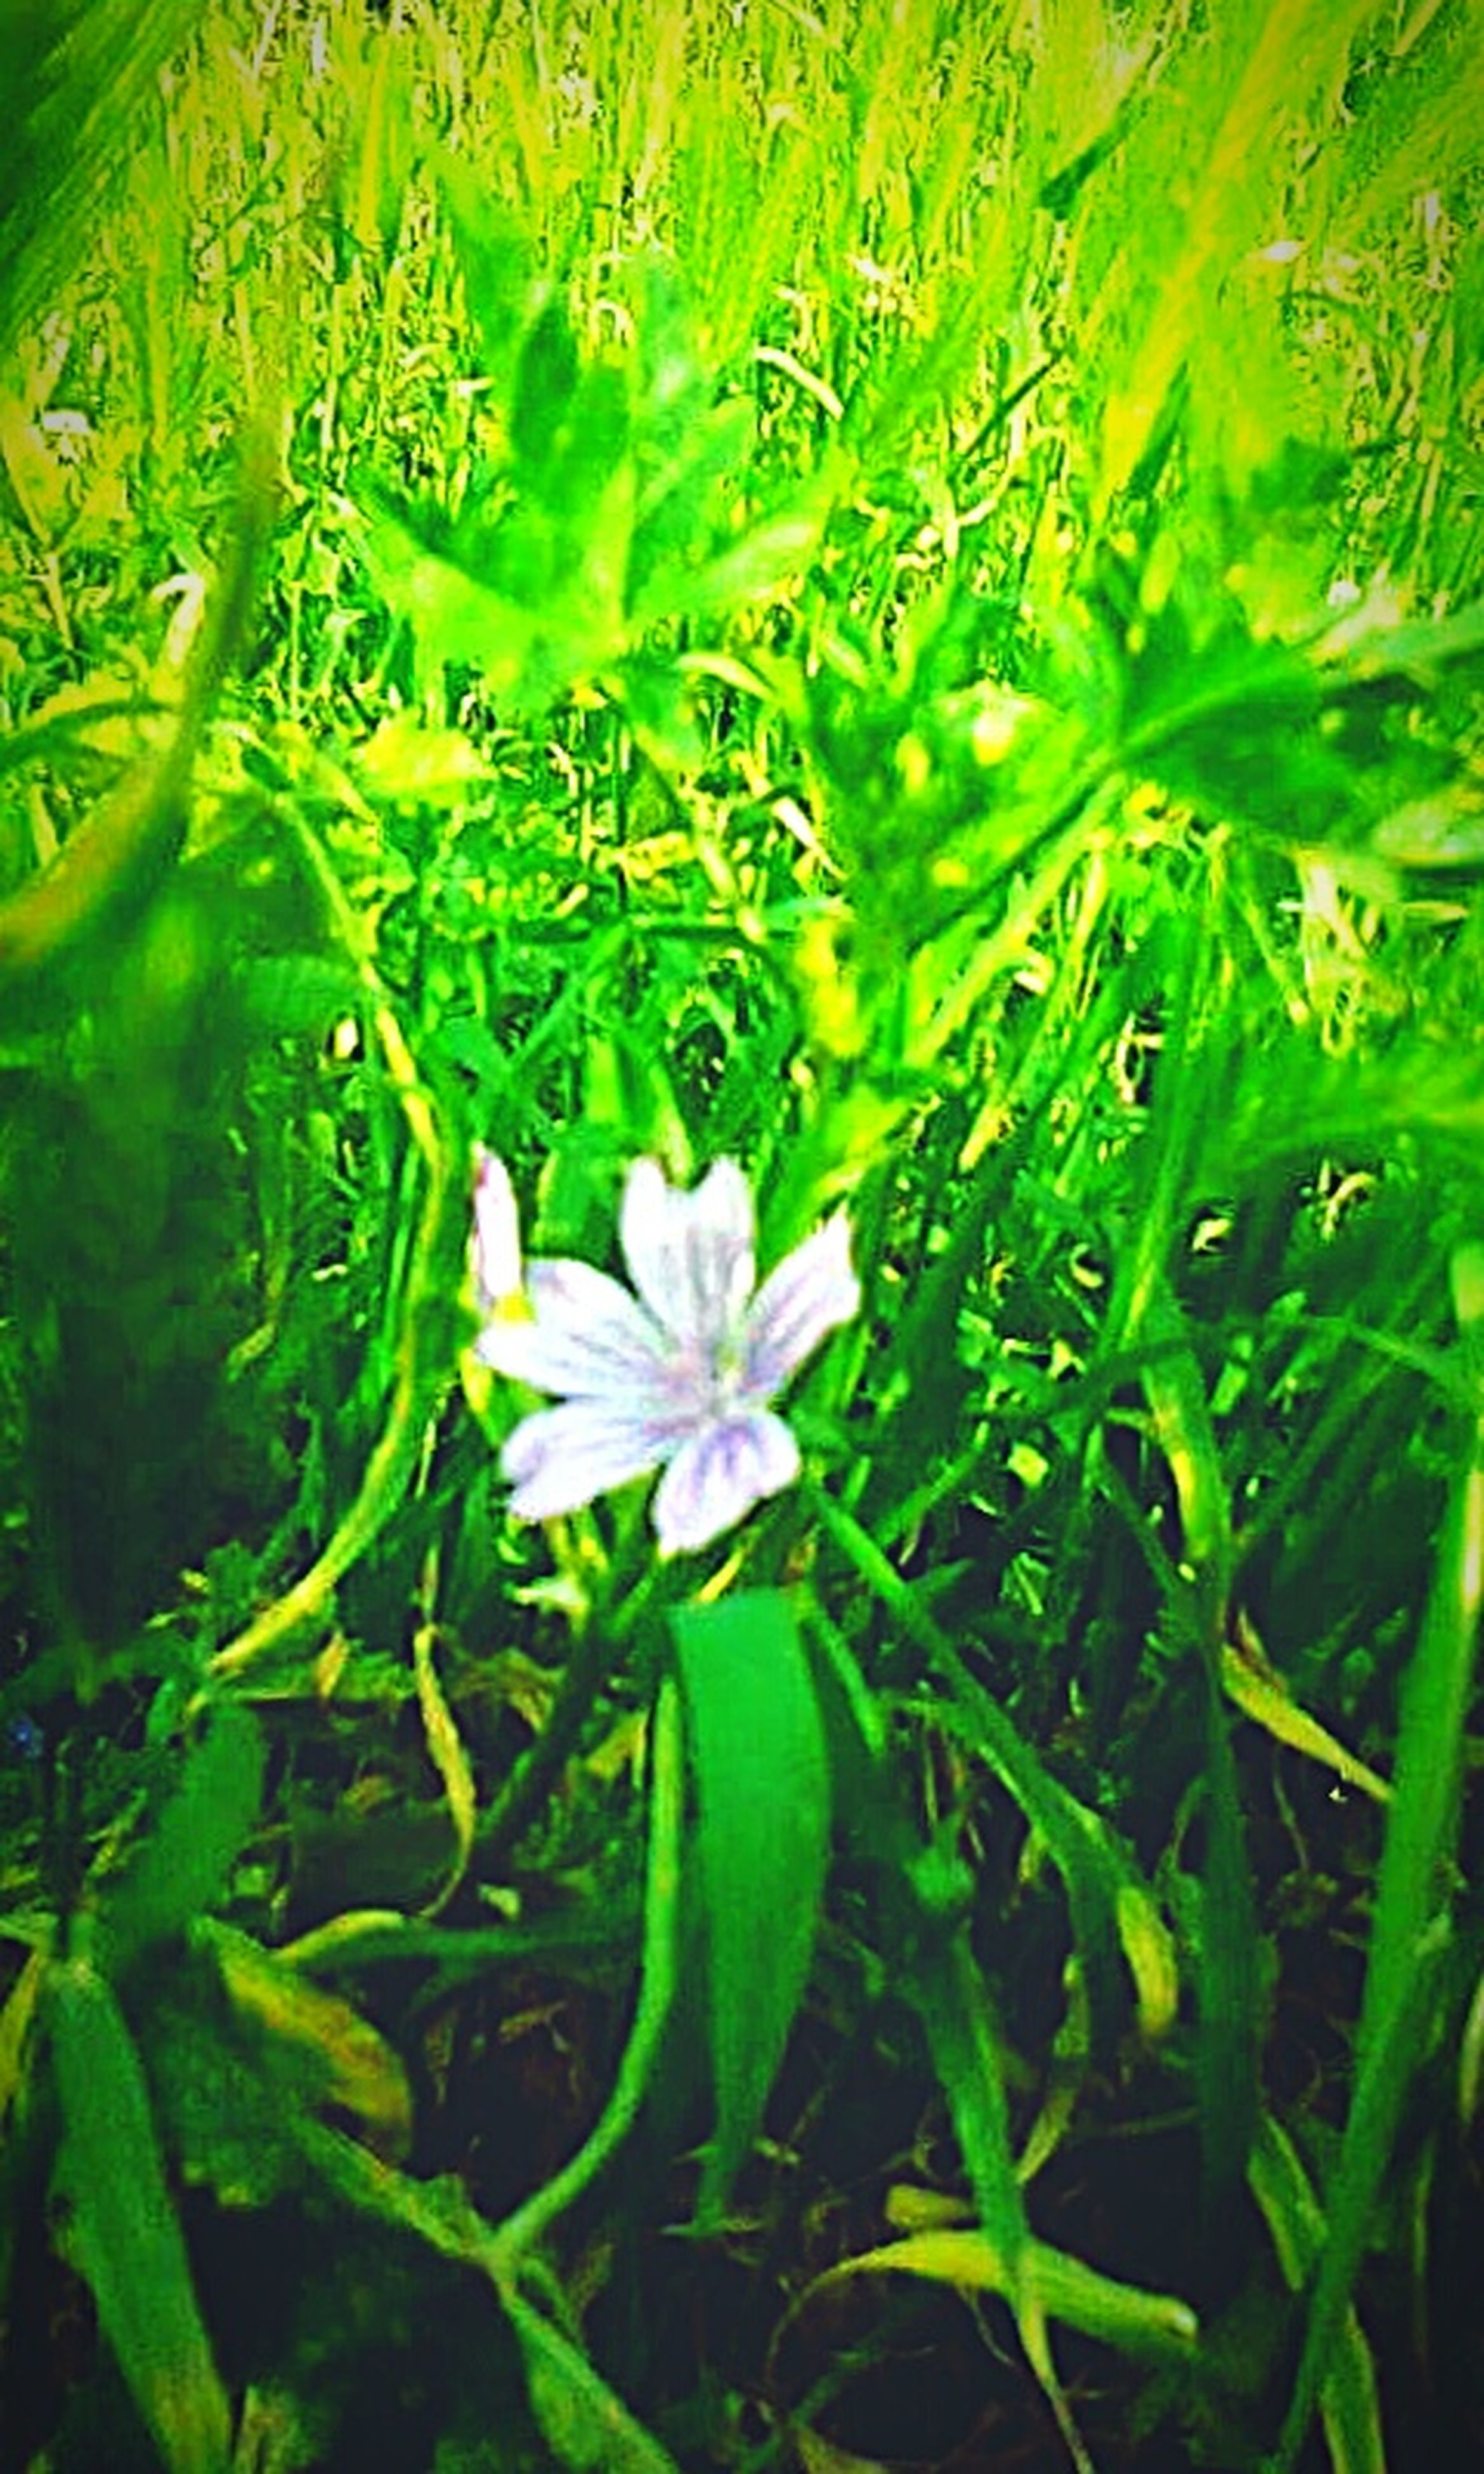 flower, growth, freshness, fragility, beauty in nature, green color, plant, petal, nature, field, flower head, blooming, leaf, close-up, grass, in bloom, high angle view, day, outdoors, green